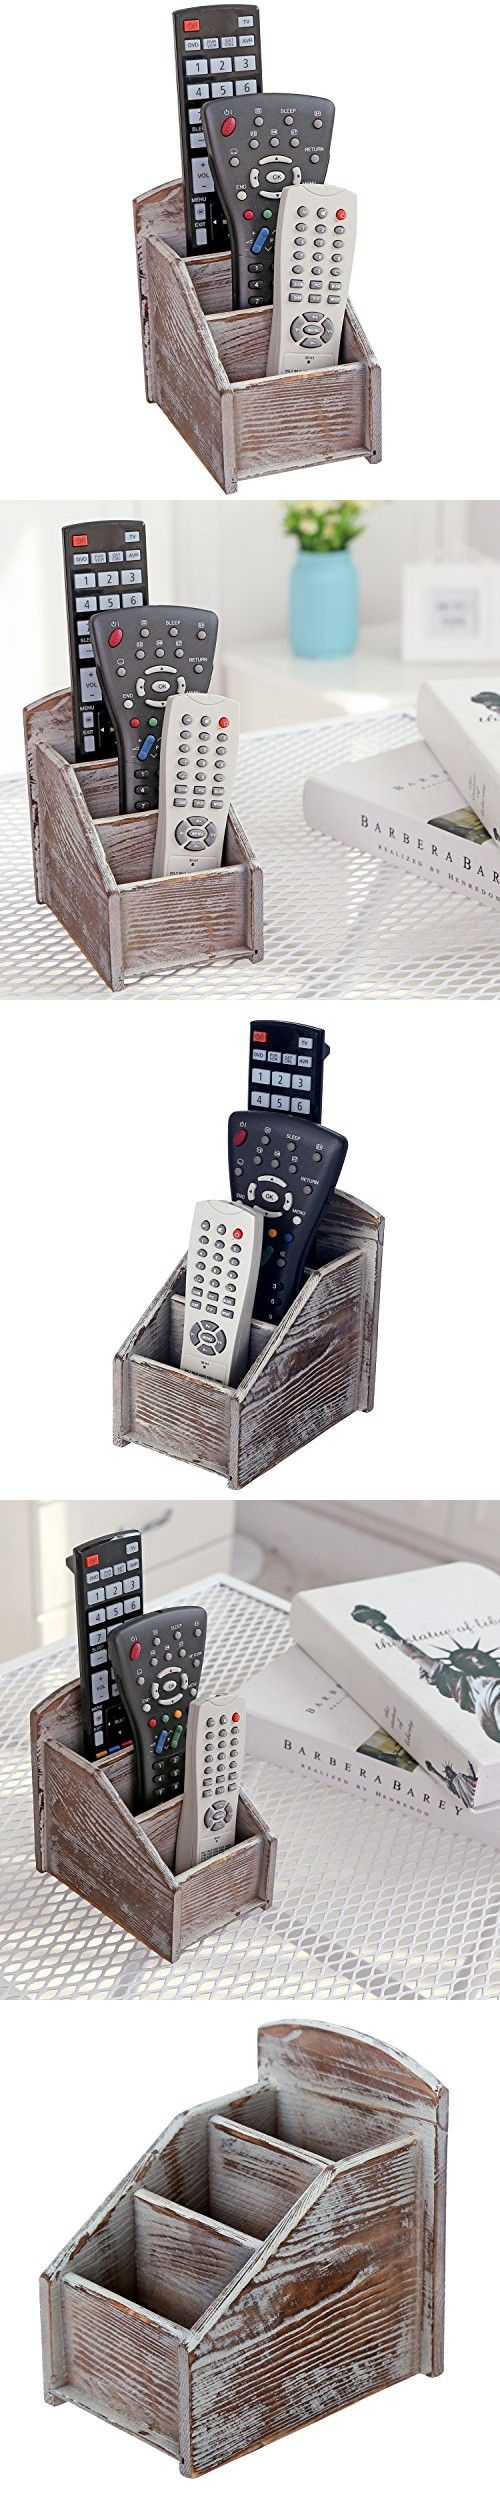 MyGift Rustic Wood Remote Control Caddy, 3 Slot Office Supply Storage Rack, Brown